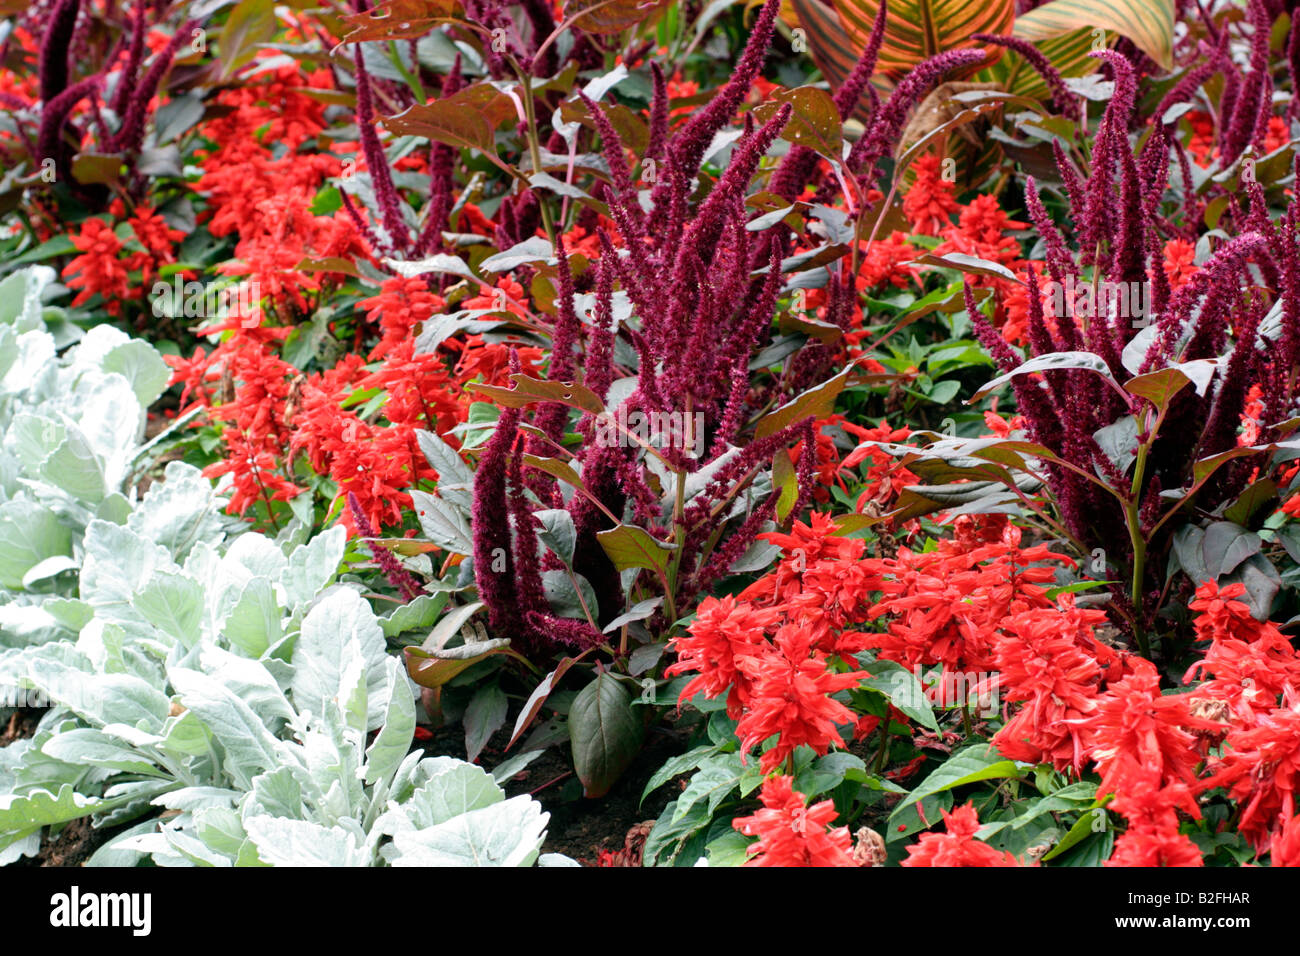 PARKS BEDDING WITH AMARANTHUS PANICULATA FOXTAIL CINERARIA MARITIMA AND SALVIA SPLENDENS - Stock Image